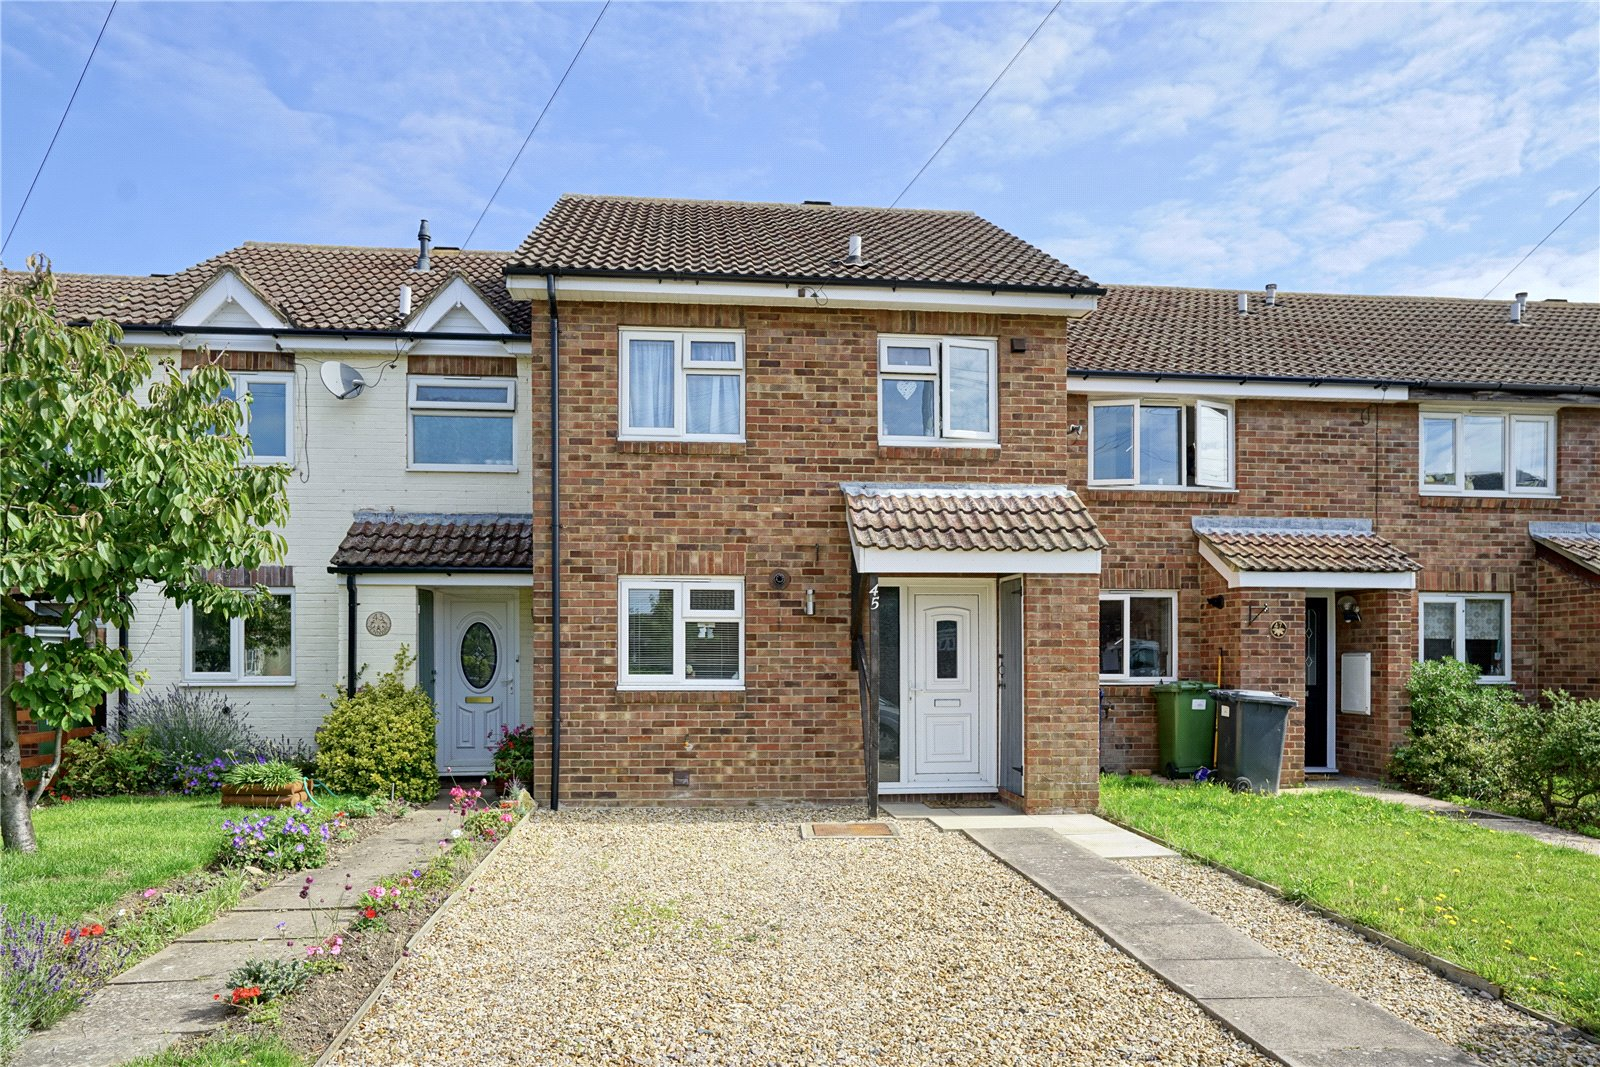 3 bed house for sale in Somersham, PE28 3JJ 0